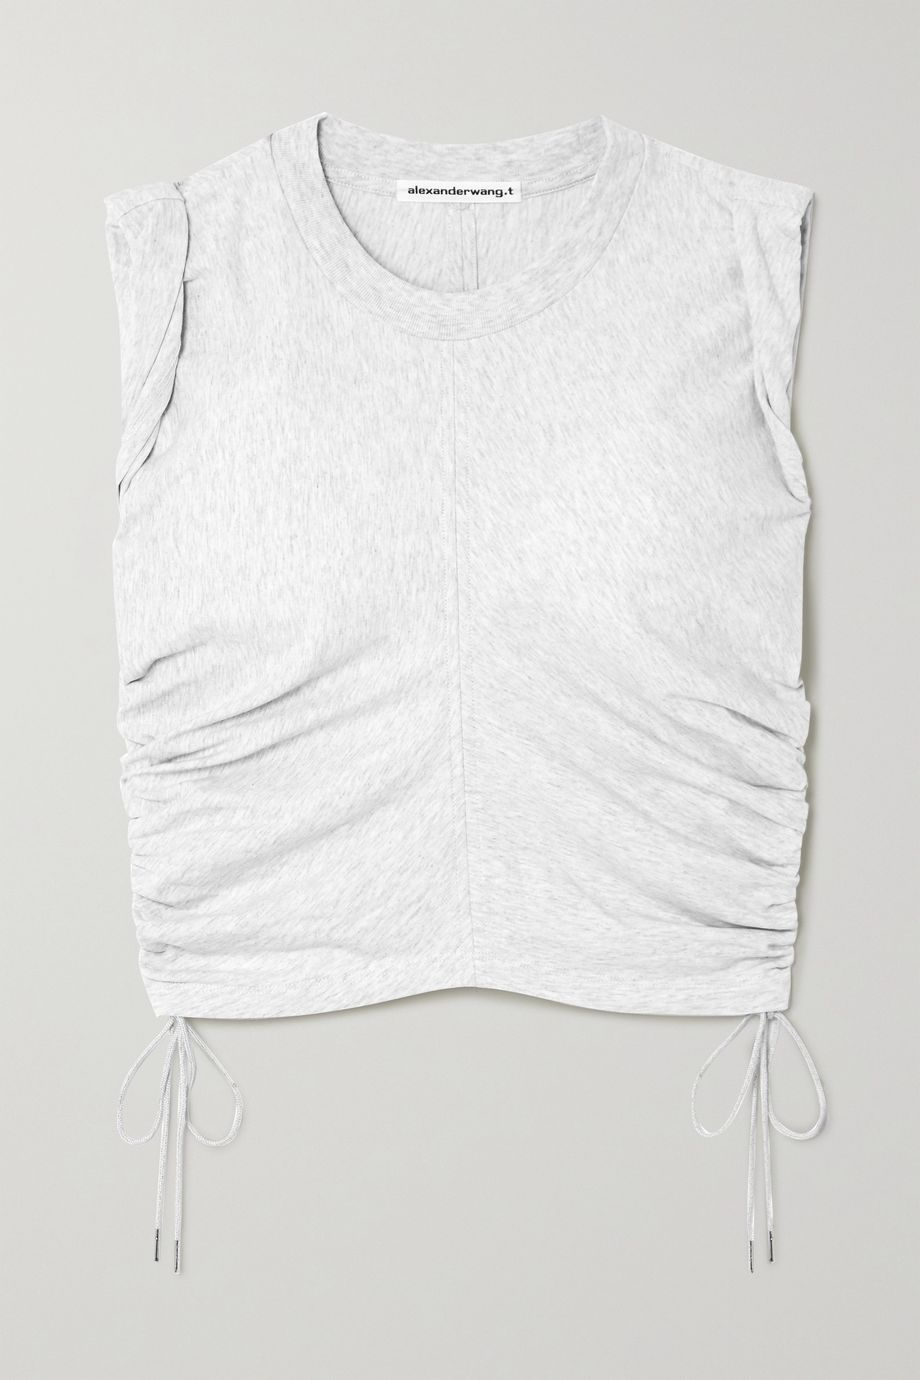 alexanderwang.t Wash and Go cropped ruched cotton-jersey tank